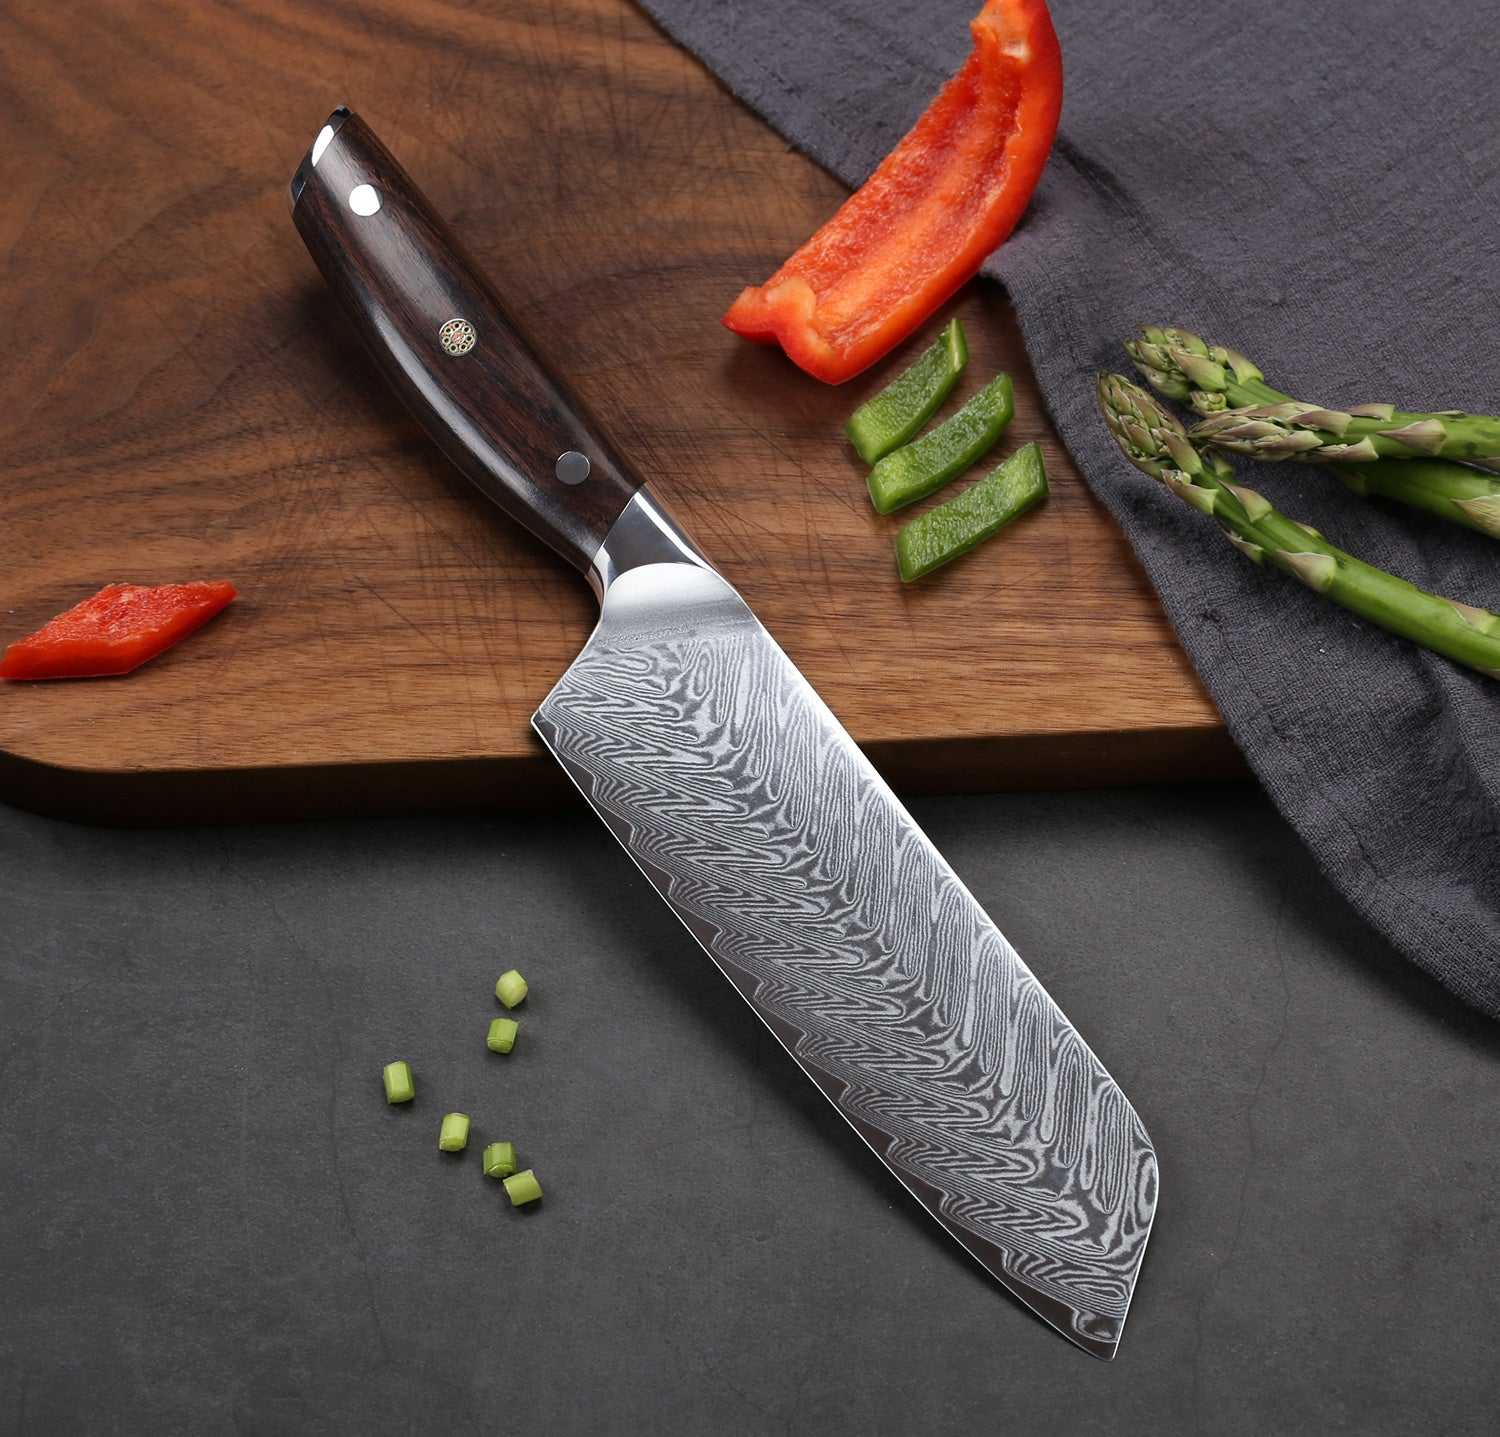 Incredibly razor sharp, full-tang, imported high-carbon German steel with a hand polished edge at 14-16 degrees per side. Oval shaped hollow divots minimize suction of stuck on food, slice faster and cleaner.